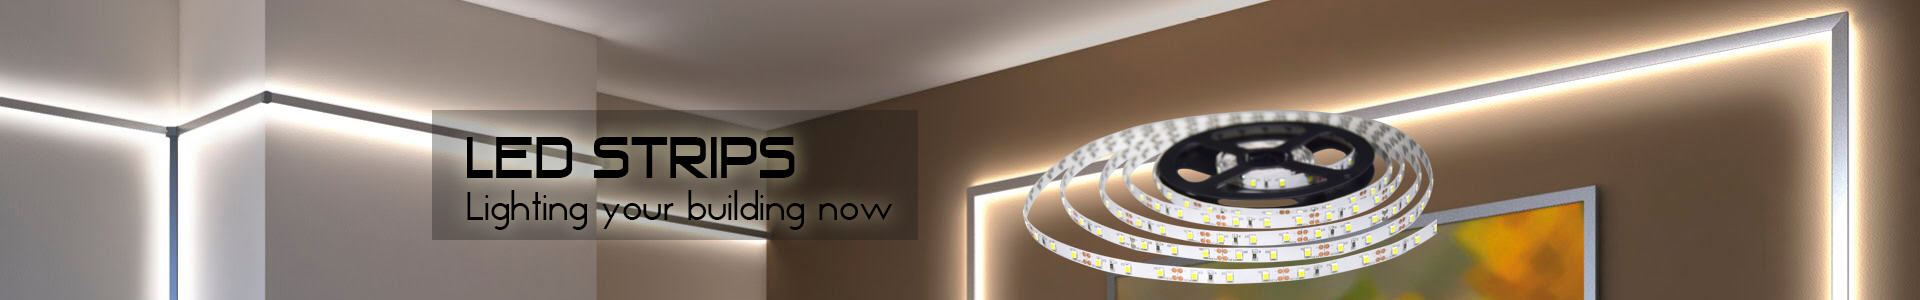 5-in-1 rgb+cct led strips, 4 in 1 rgbw led strips